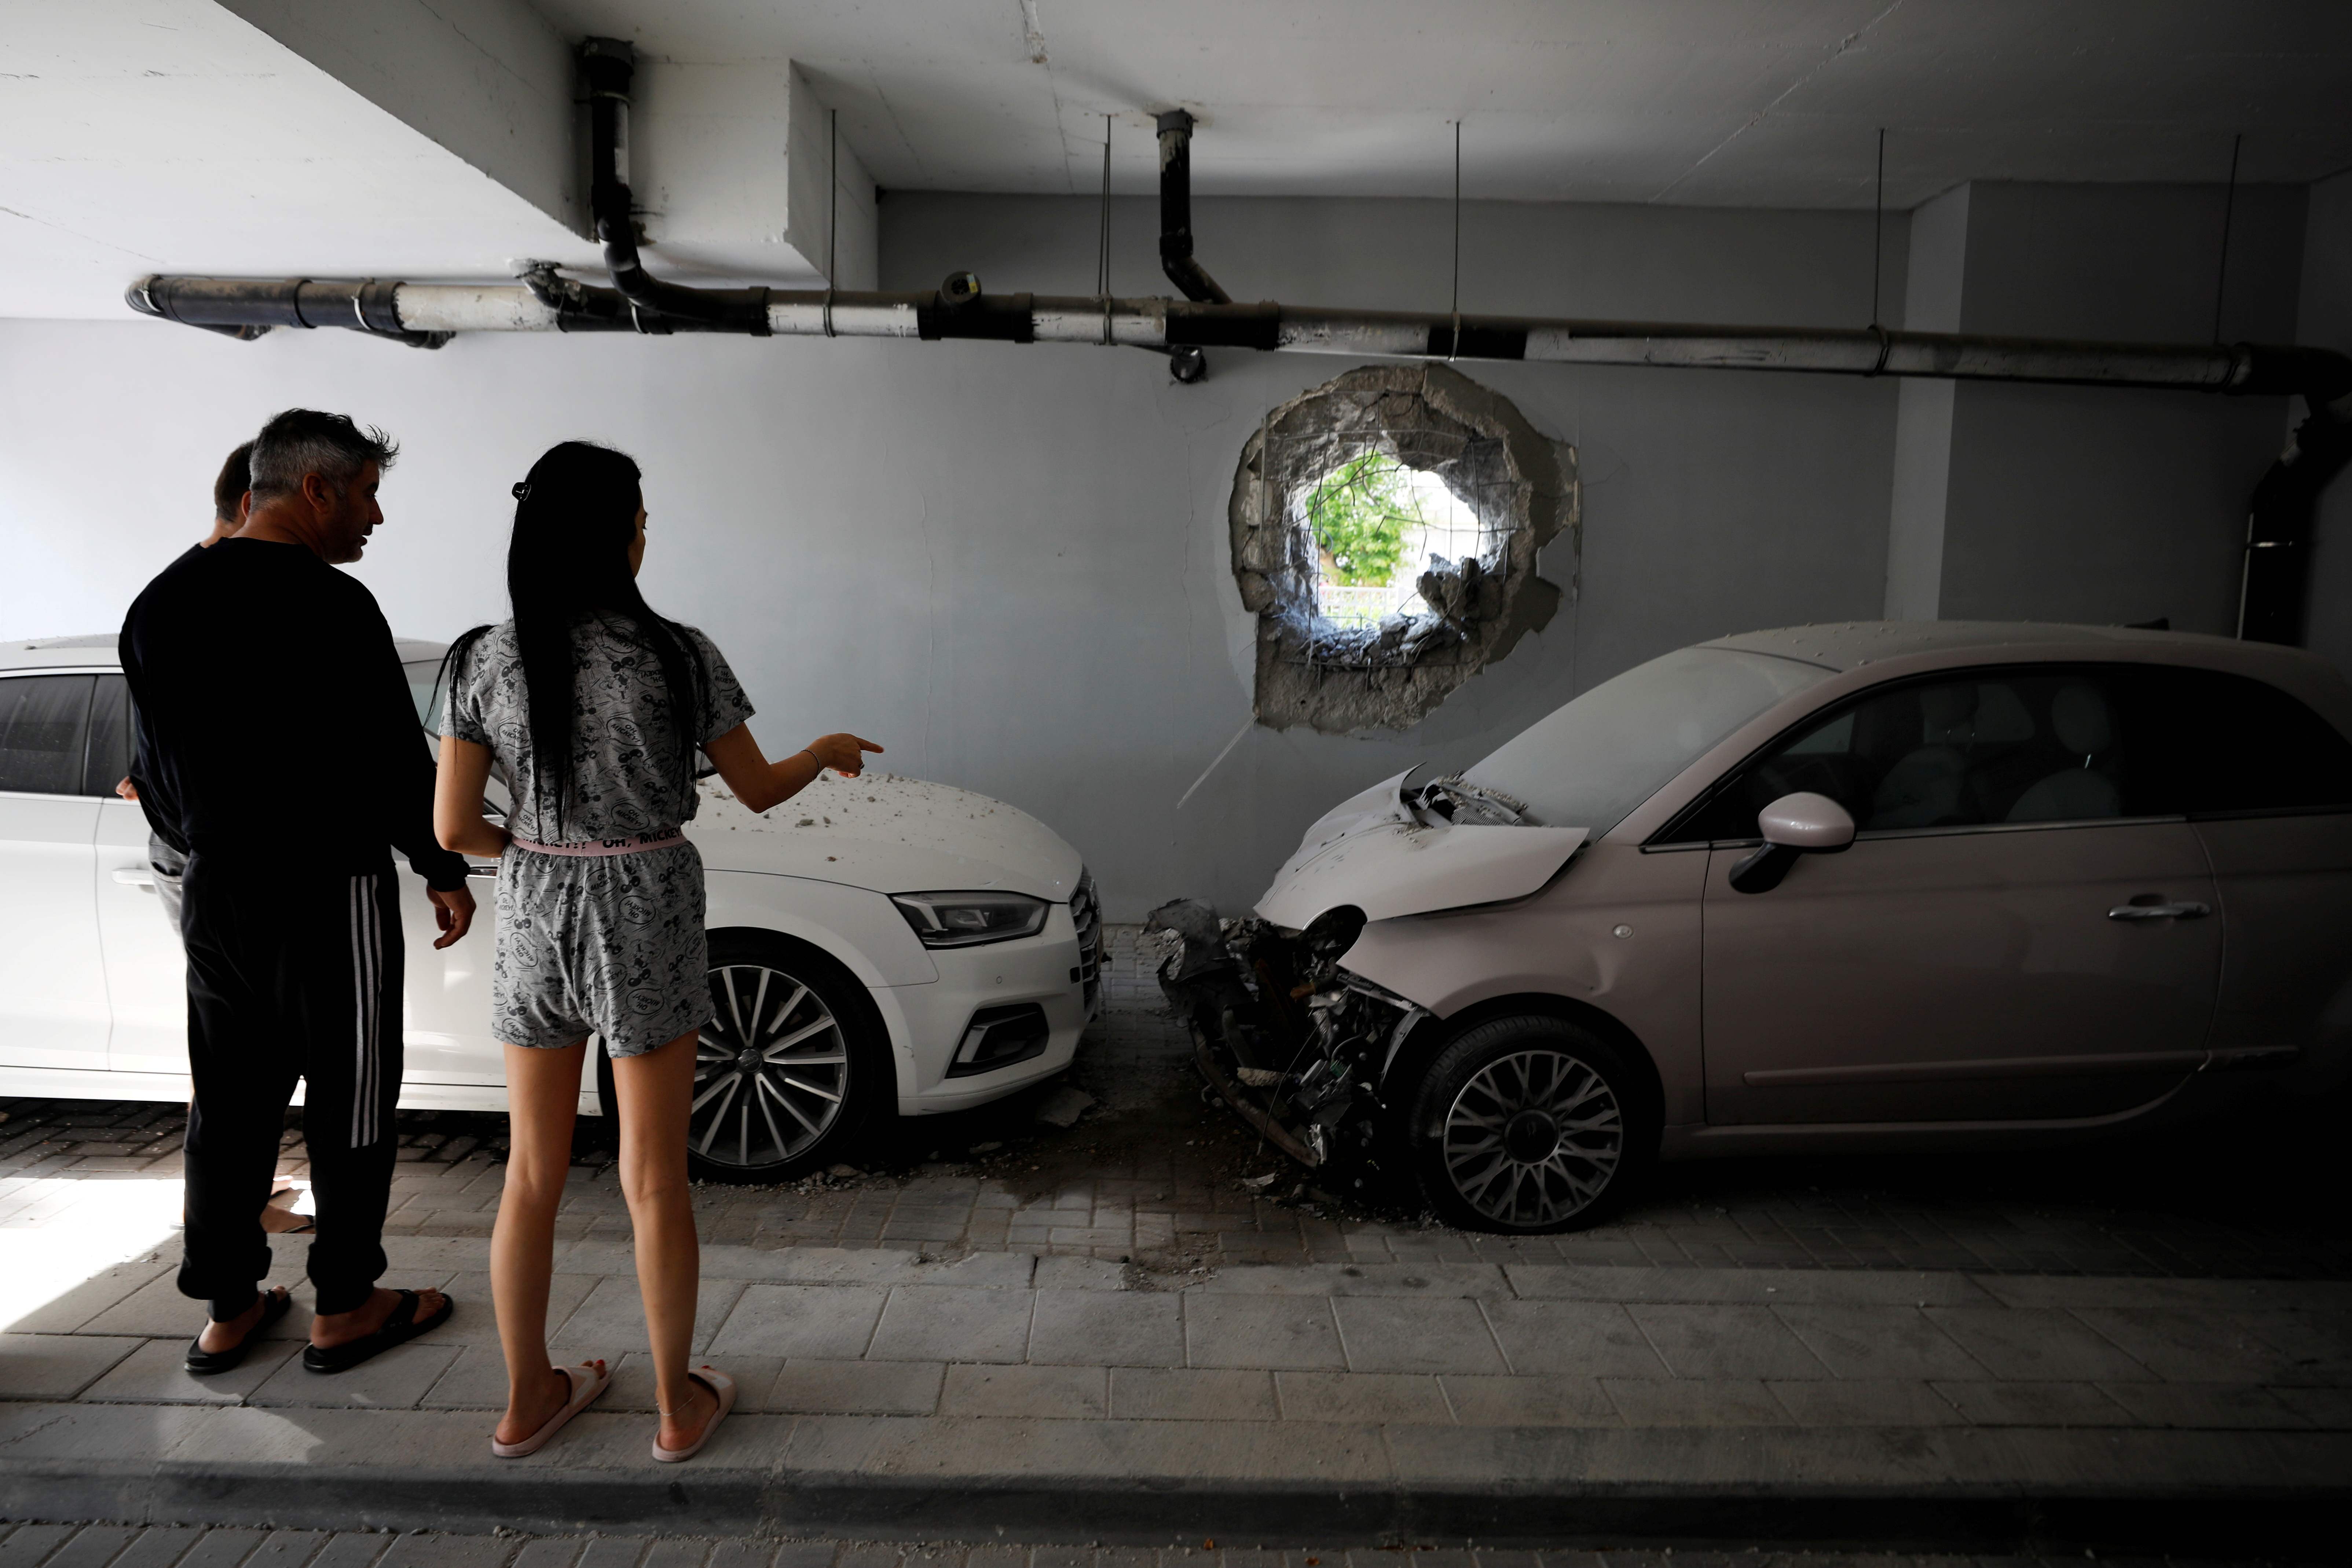 Residents look at their cars at the parking area under a residential building in Ashkelon, Israel, which was damaged by a direct hit from a rocket launched overnight from the Gaza Strip May 14, 2021. REUTERS/Amir Cohen